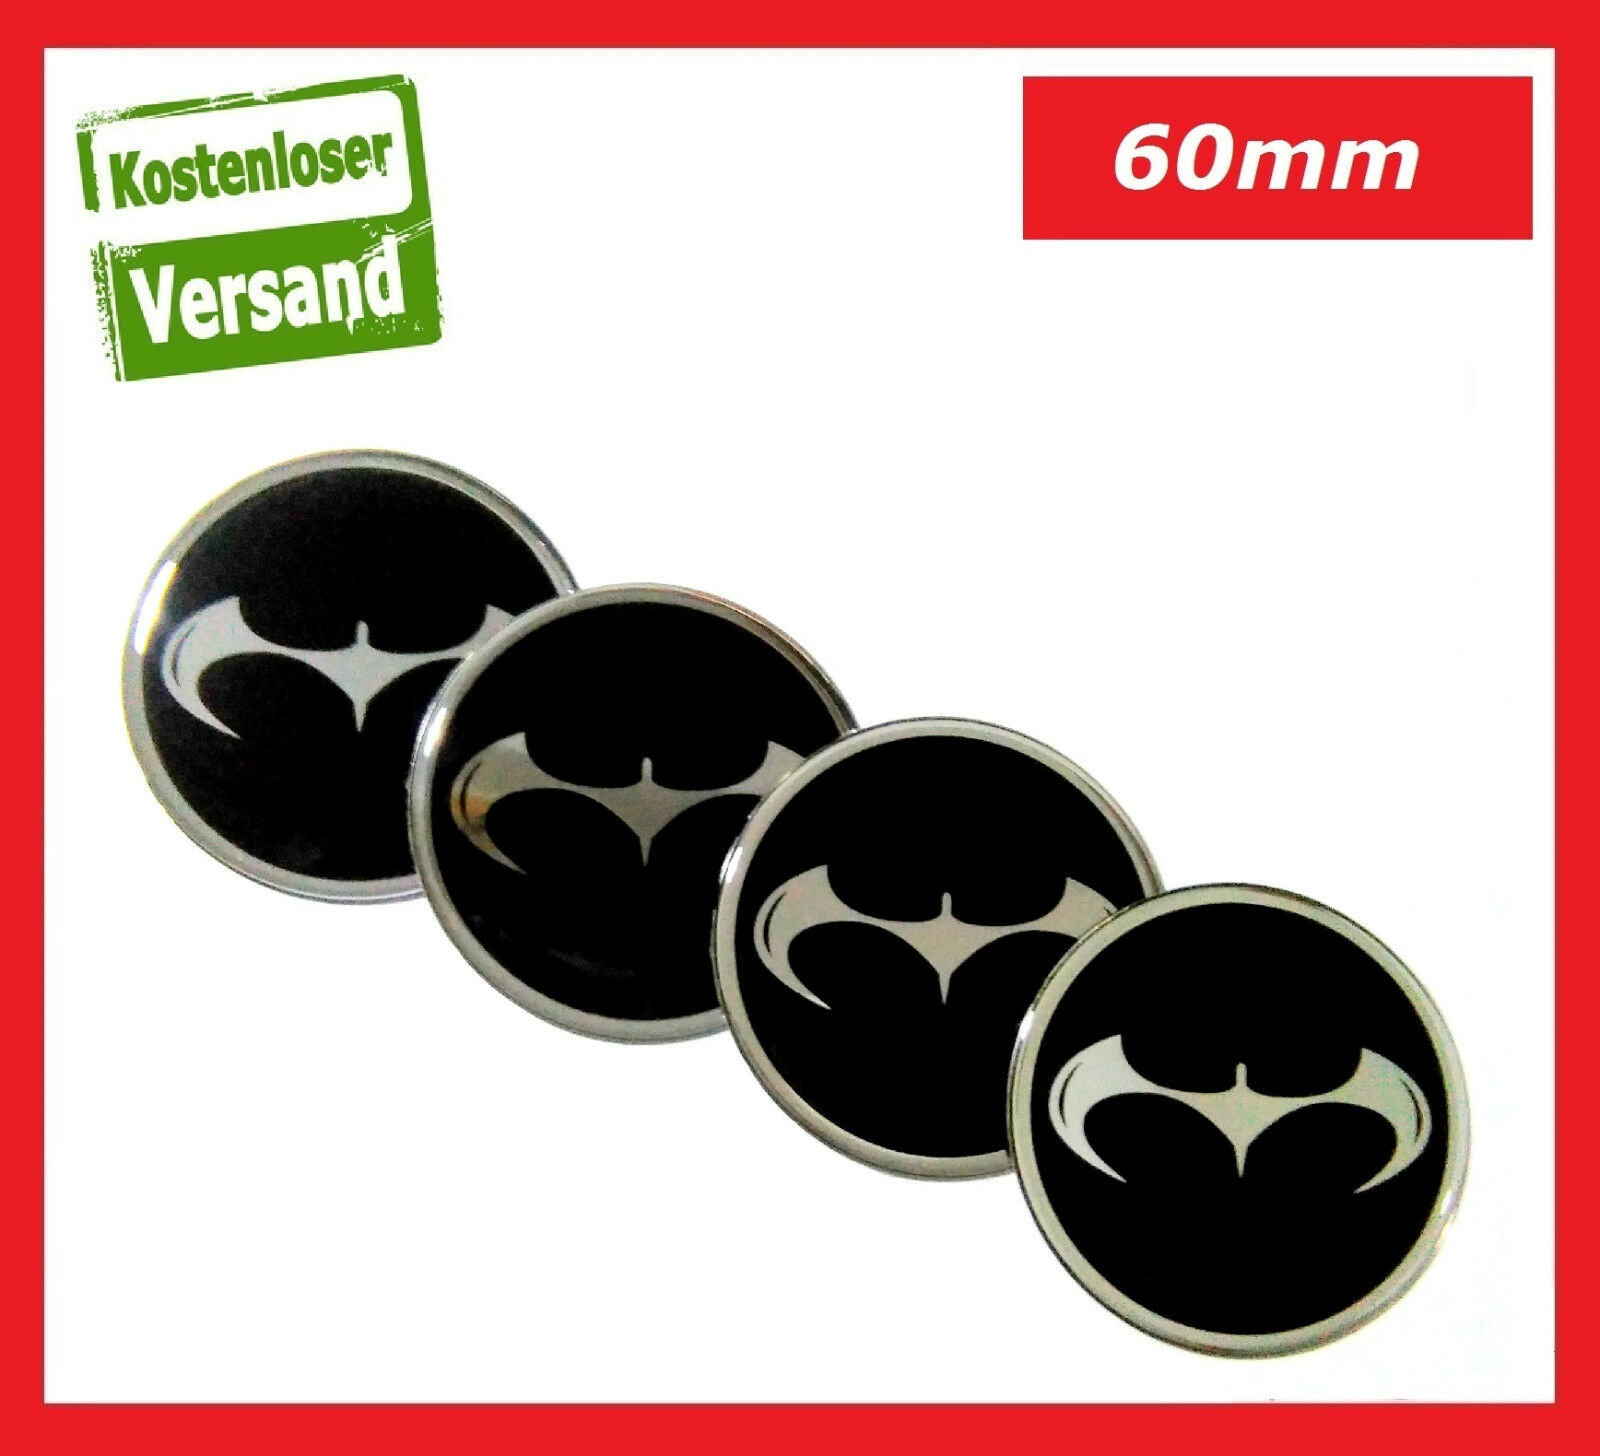 4x 60mm emblem felgen aufkleber nabendeckel felgendeckel. Black Bedroom Furniture Sets. Home Design Ideas